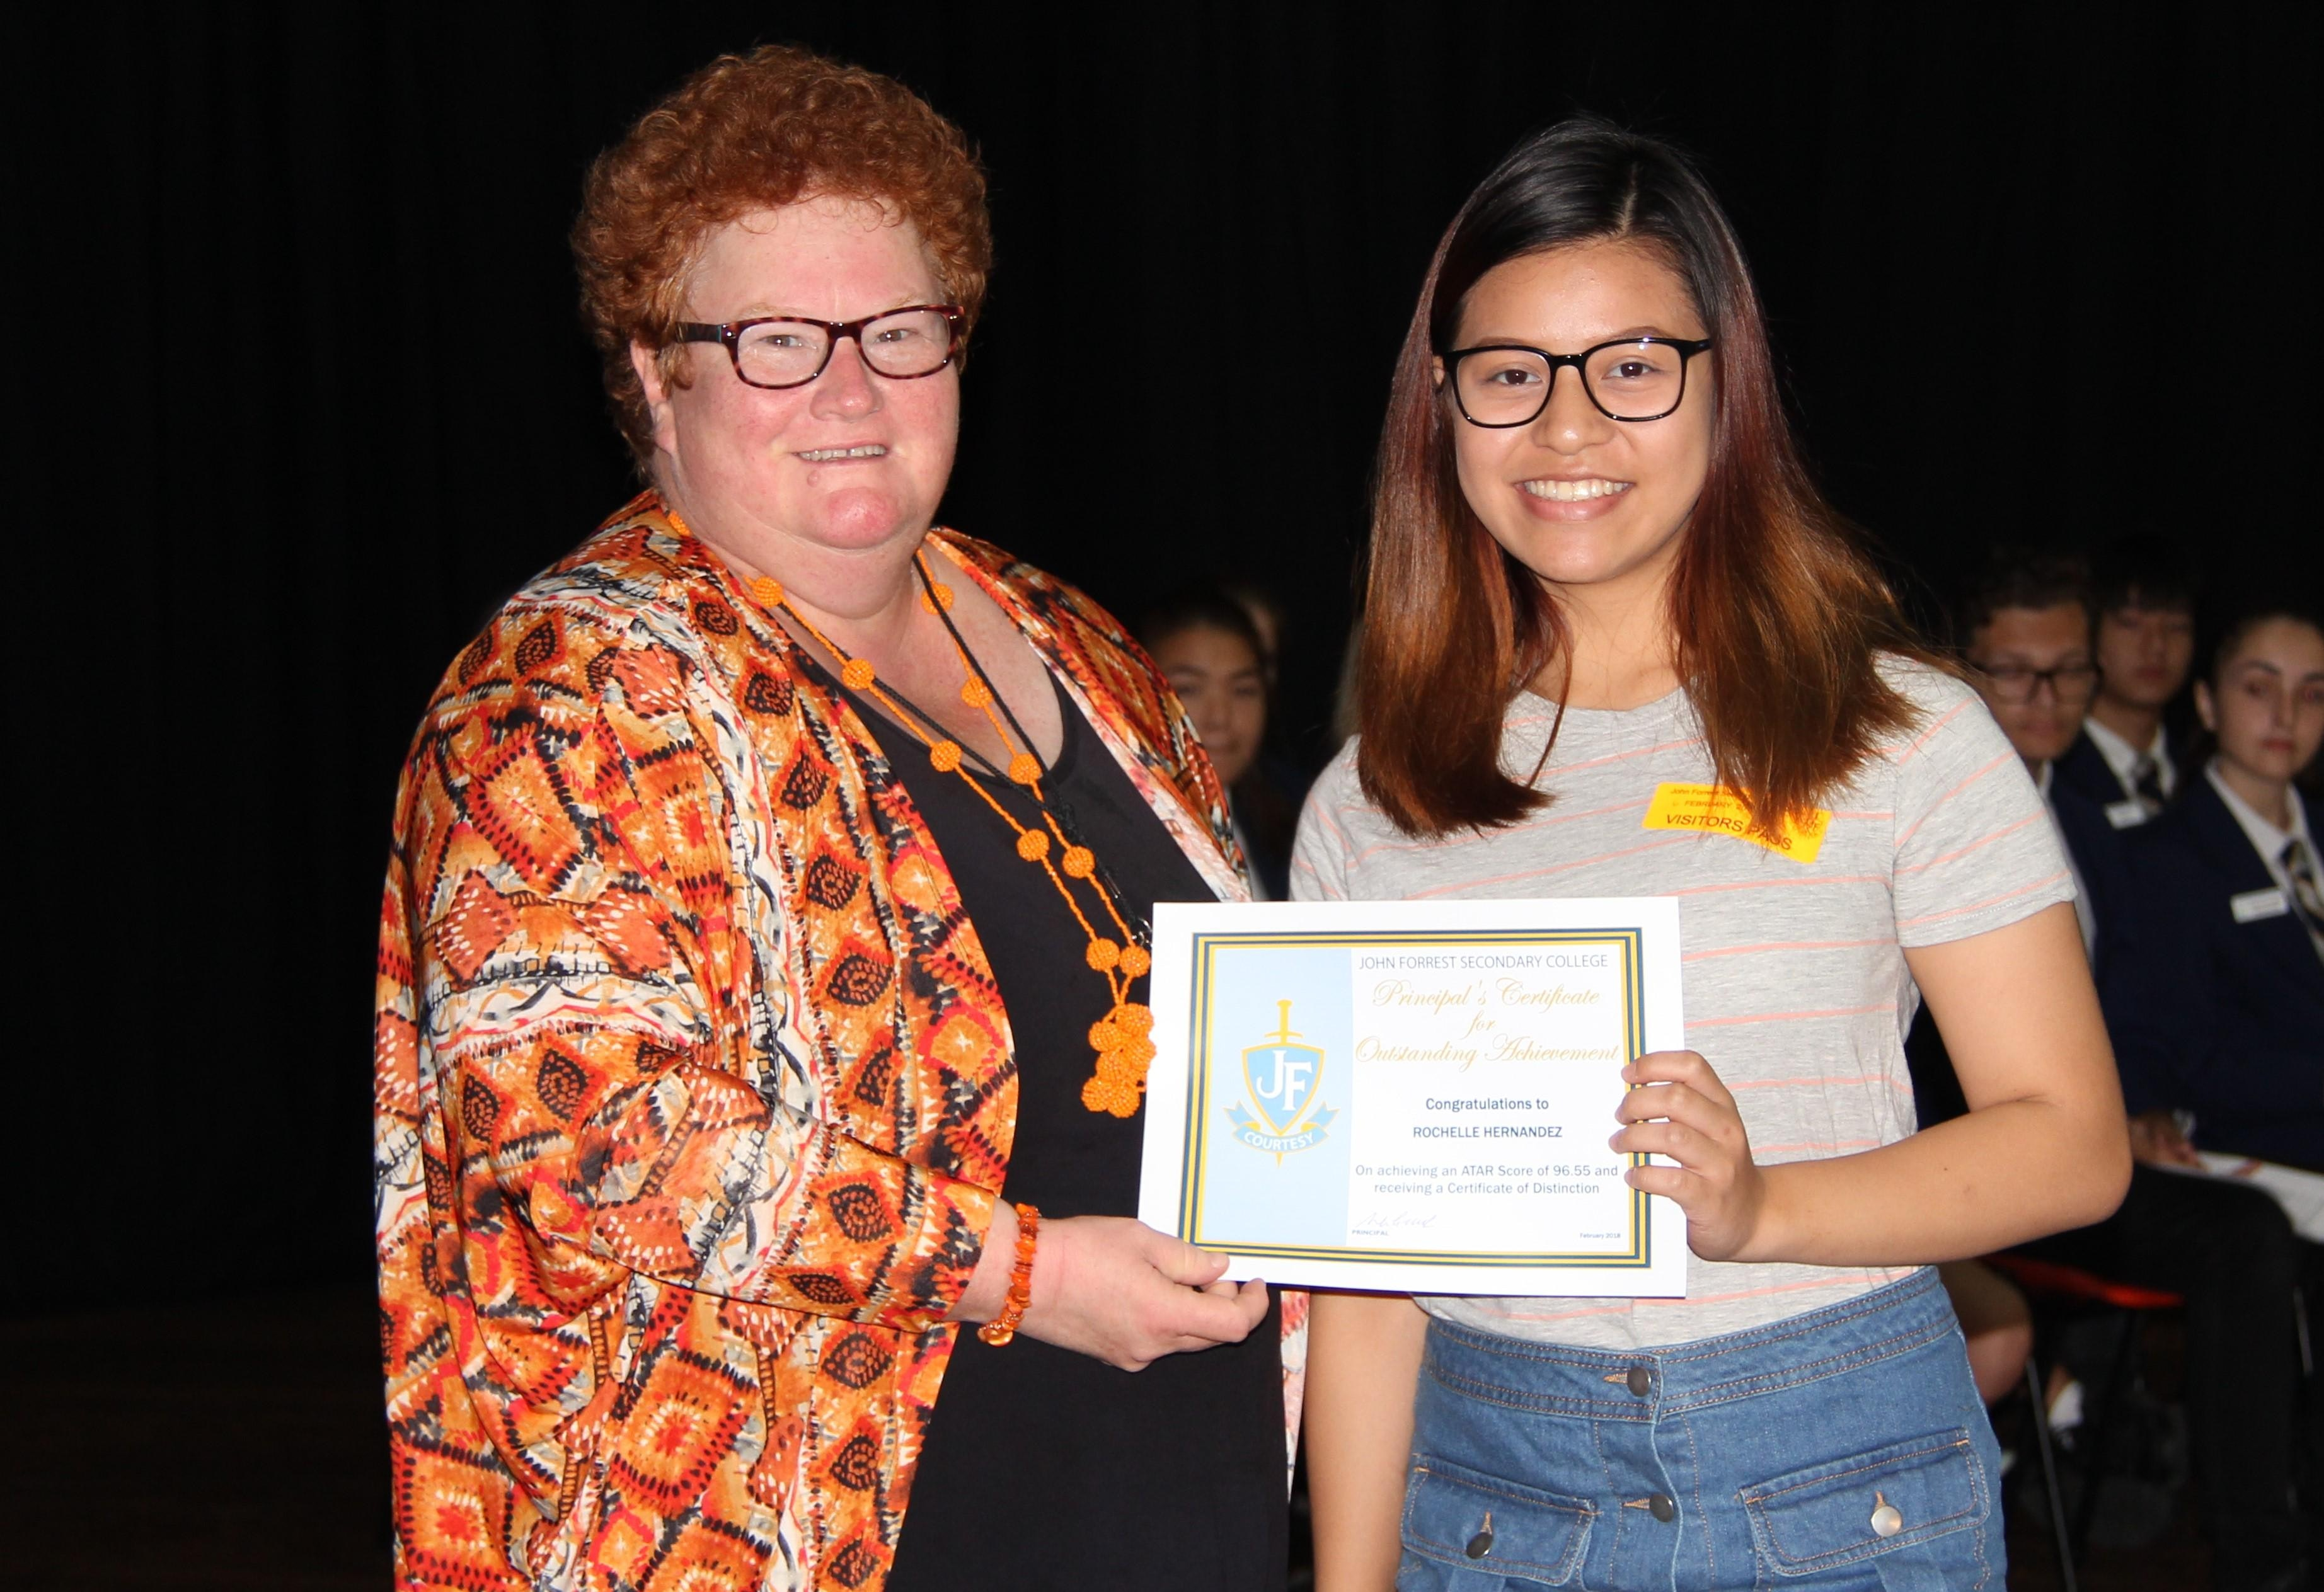 Rochelle Hernandez - Certificate of Distinction, ATAR of 96.55